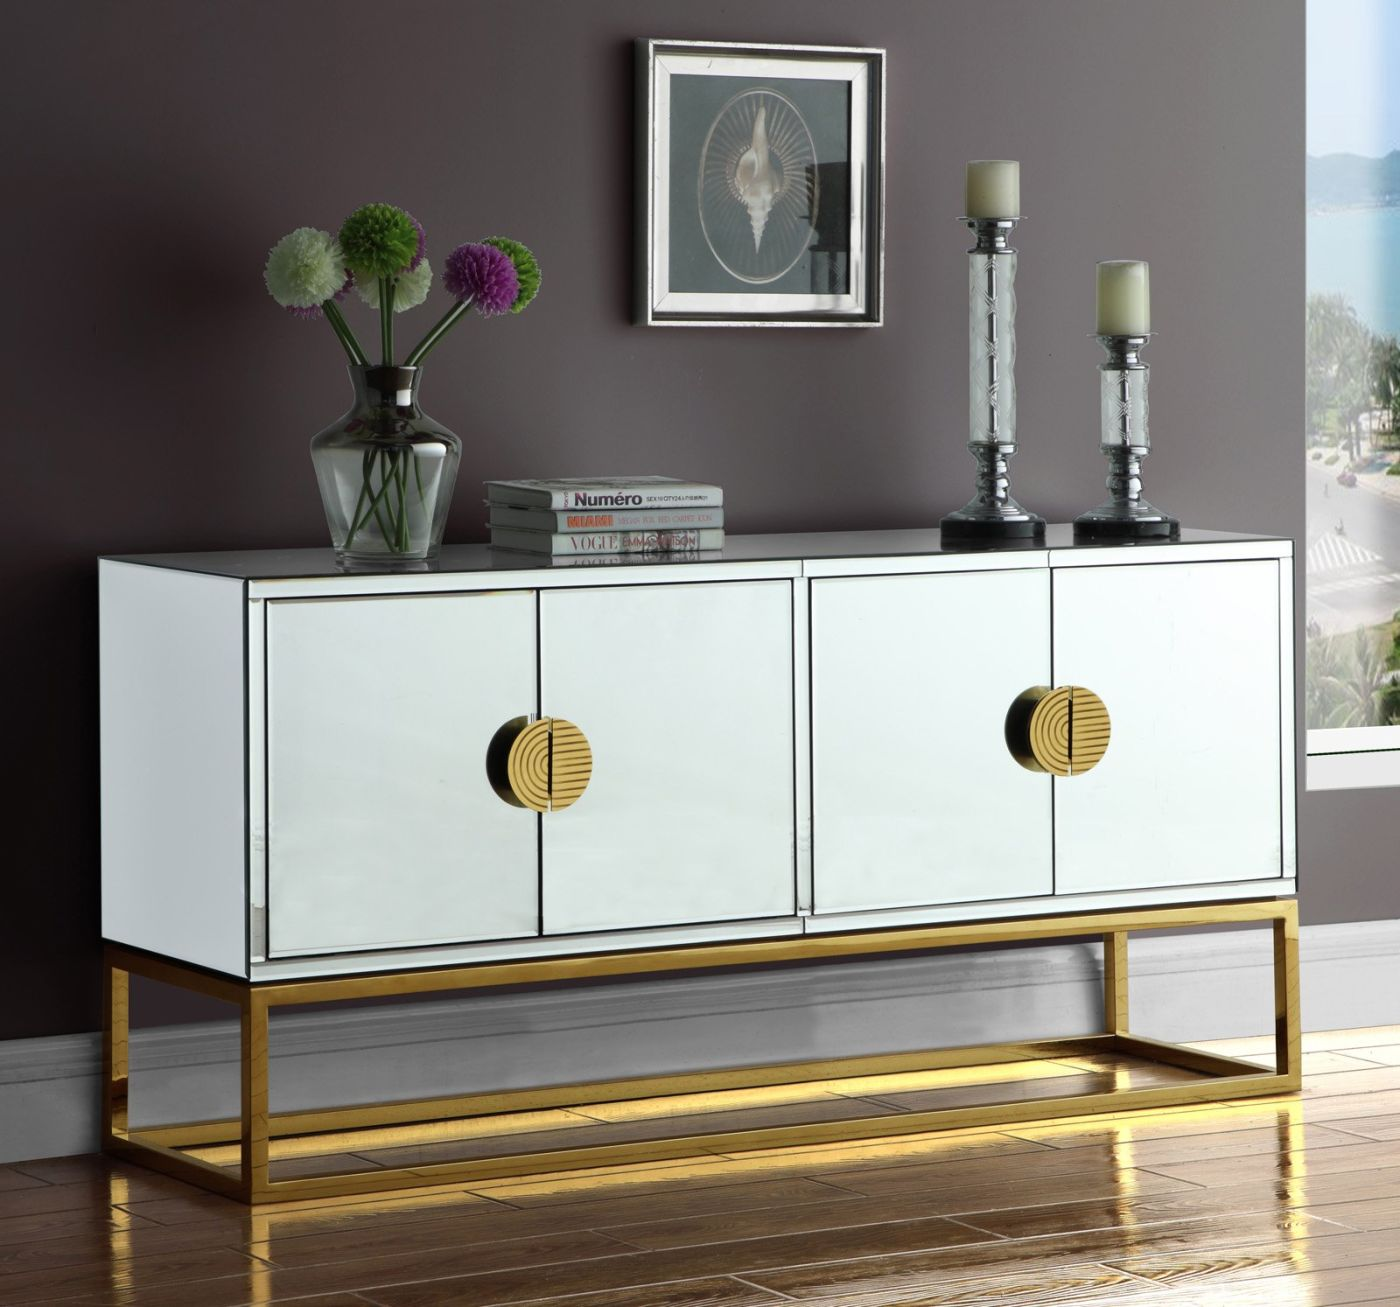 Buy Meridian 302 Marbella Mirrored Sideboard Buffet Gold